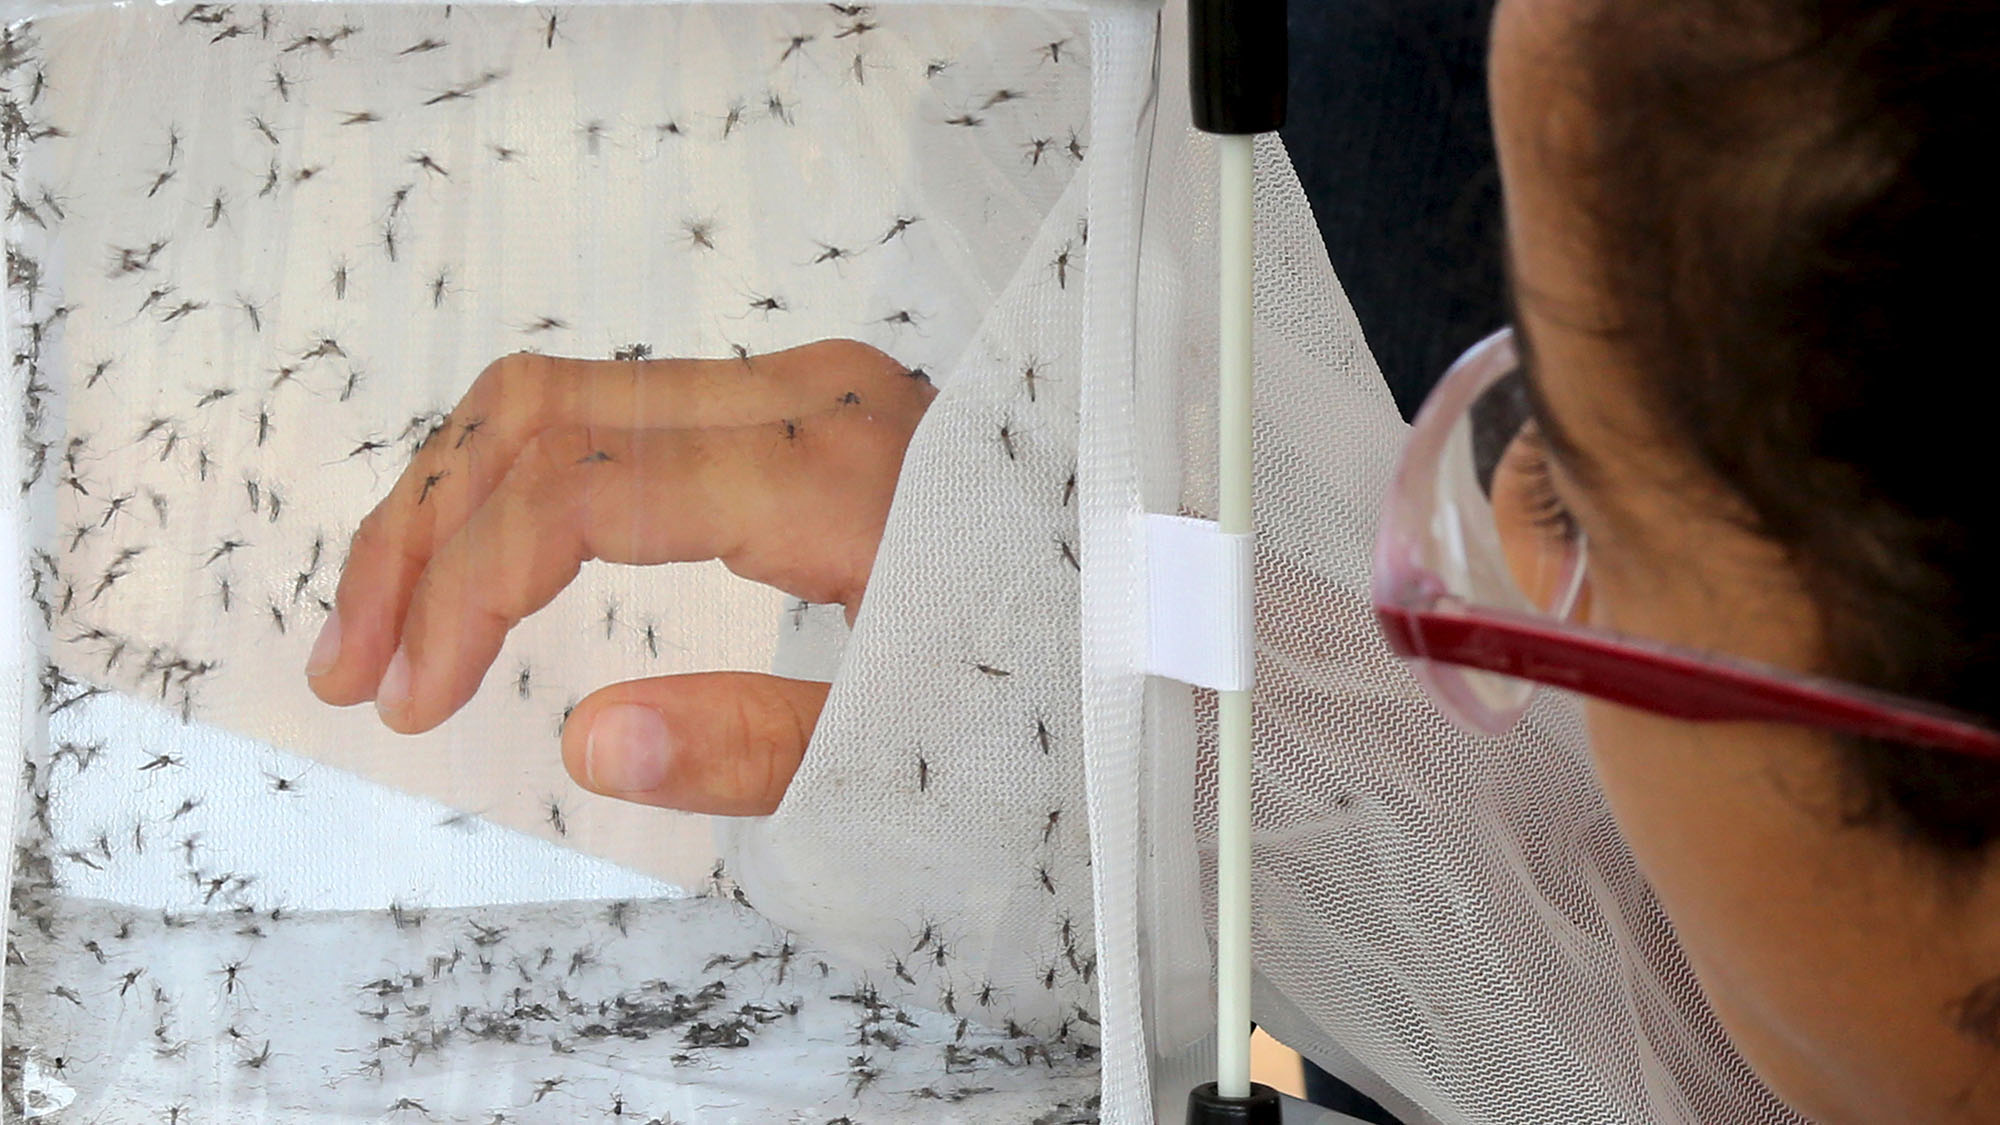 A girl puts her hand in a box with male genetically modified Aedes aegypti mosquitoes at an educational exhibition by British biotechnology company Oxitec in Piracicaba Brazil, March 5, 2015. An epidemic of dengue fever is fanning public anger over what Brazilians say is President Dilma Rousseff's biggest challenge - the sad state of the national healthcare system. About 750,000 cases of the mosquito-borne virus have been confirmed this year in this country of 200 million people, leading to waits of four hours or longer at some hospitals. The disease, which causes fever and joint pain, has killed 229 people so far this year - up 45 percent from the same period in 2014. Picture taken March 5, 2015.